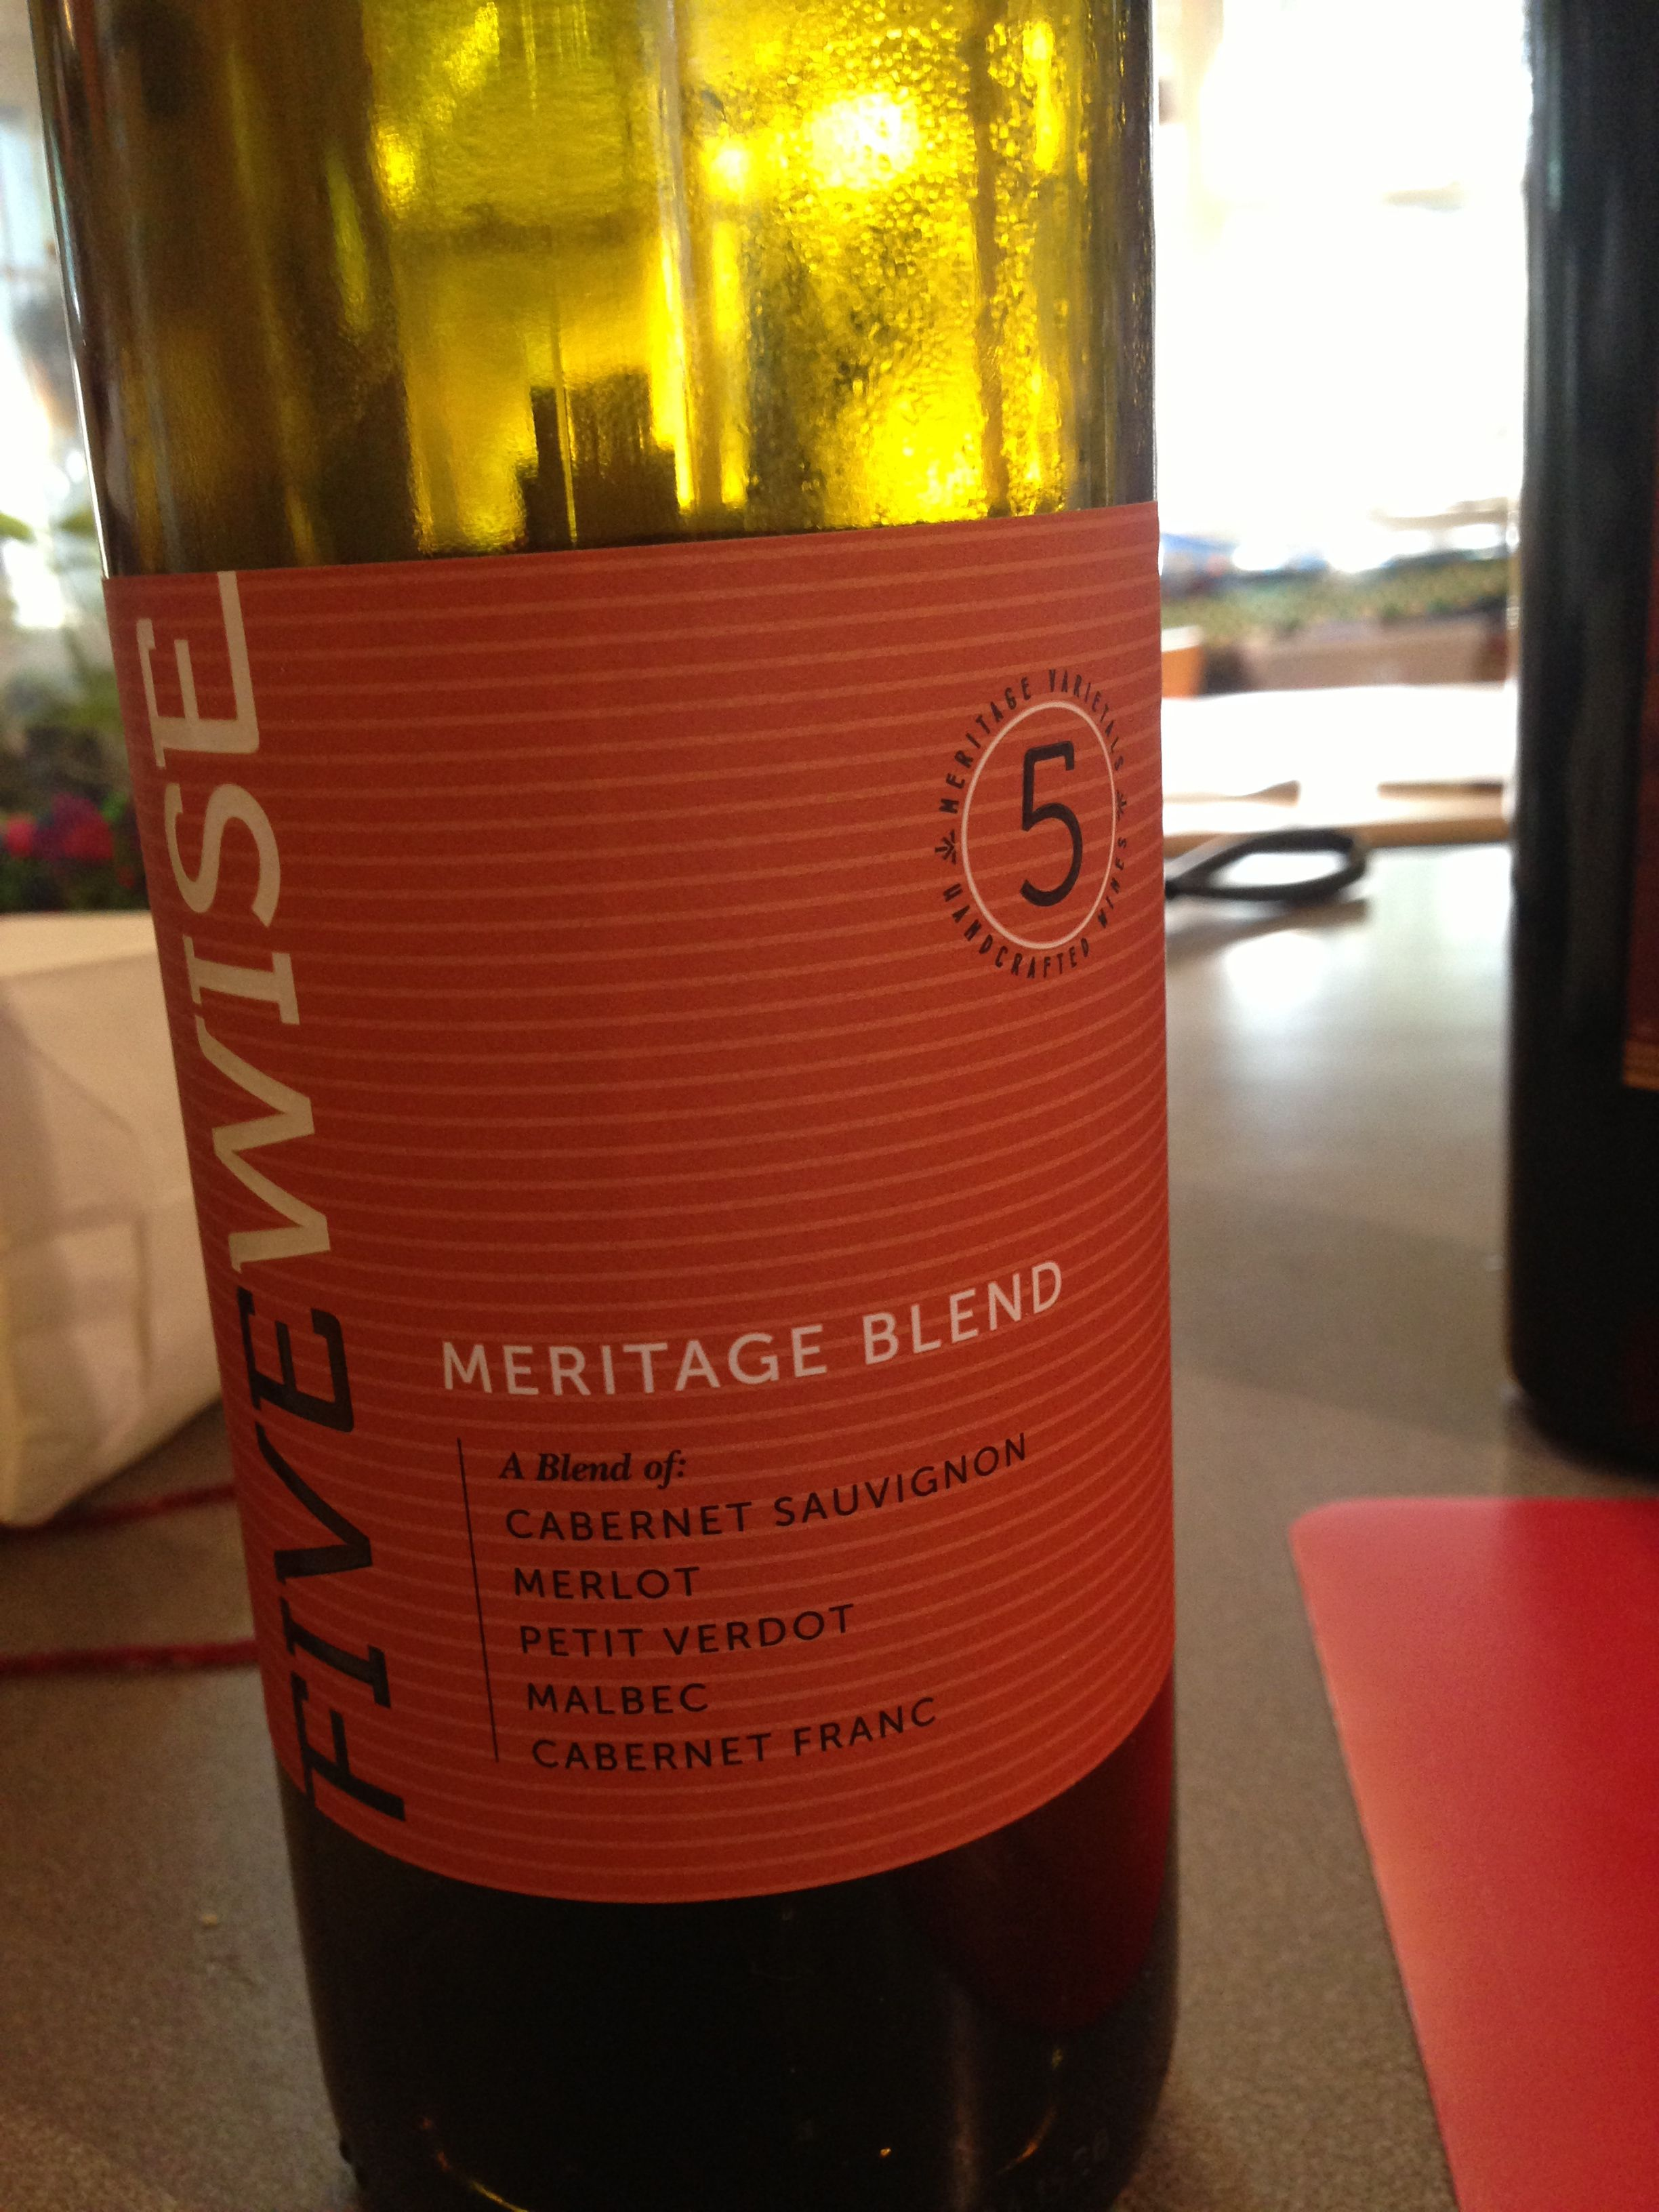 Five Wise Meritage Blend Rich And Full A Great Dinner Wine For The Price Malbec Cabernet Franc Cabernet Merlot